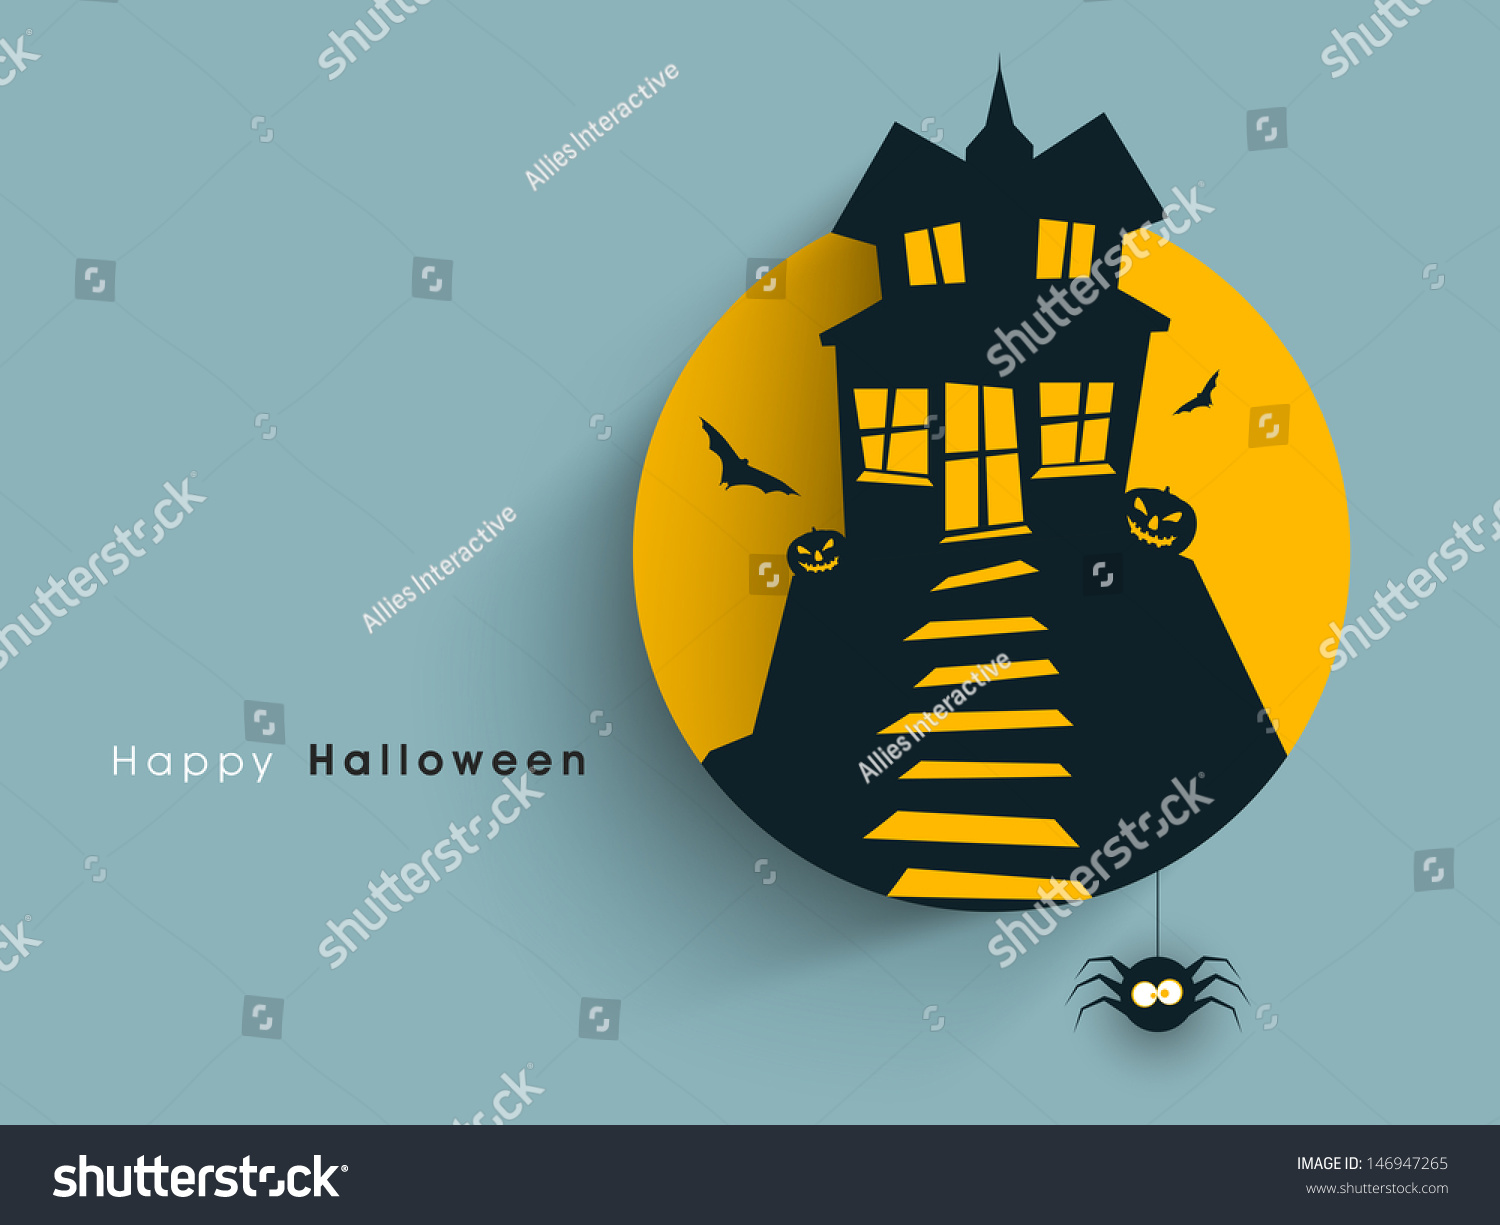 Tag, Label Or Sticker With Haunted House For Halloween Party ...